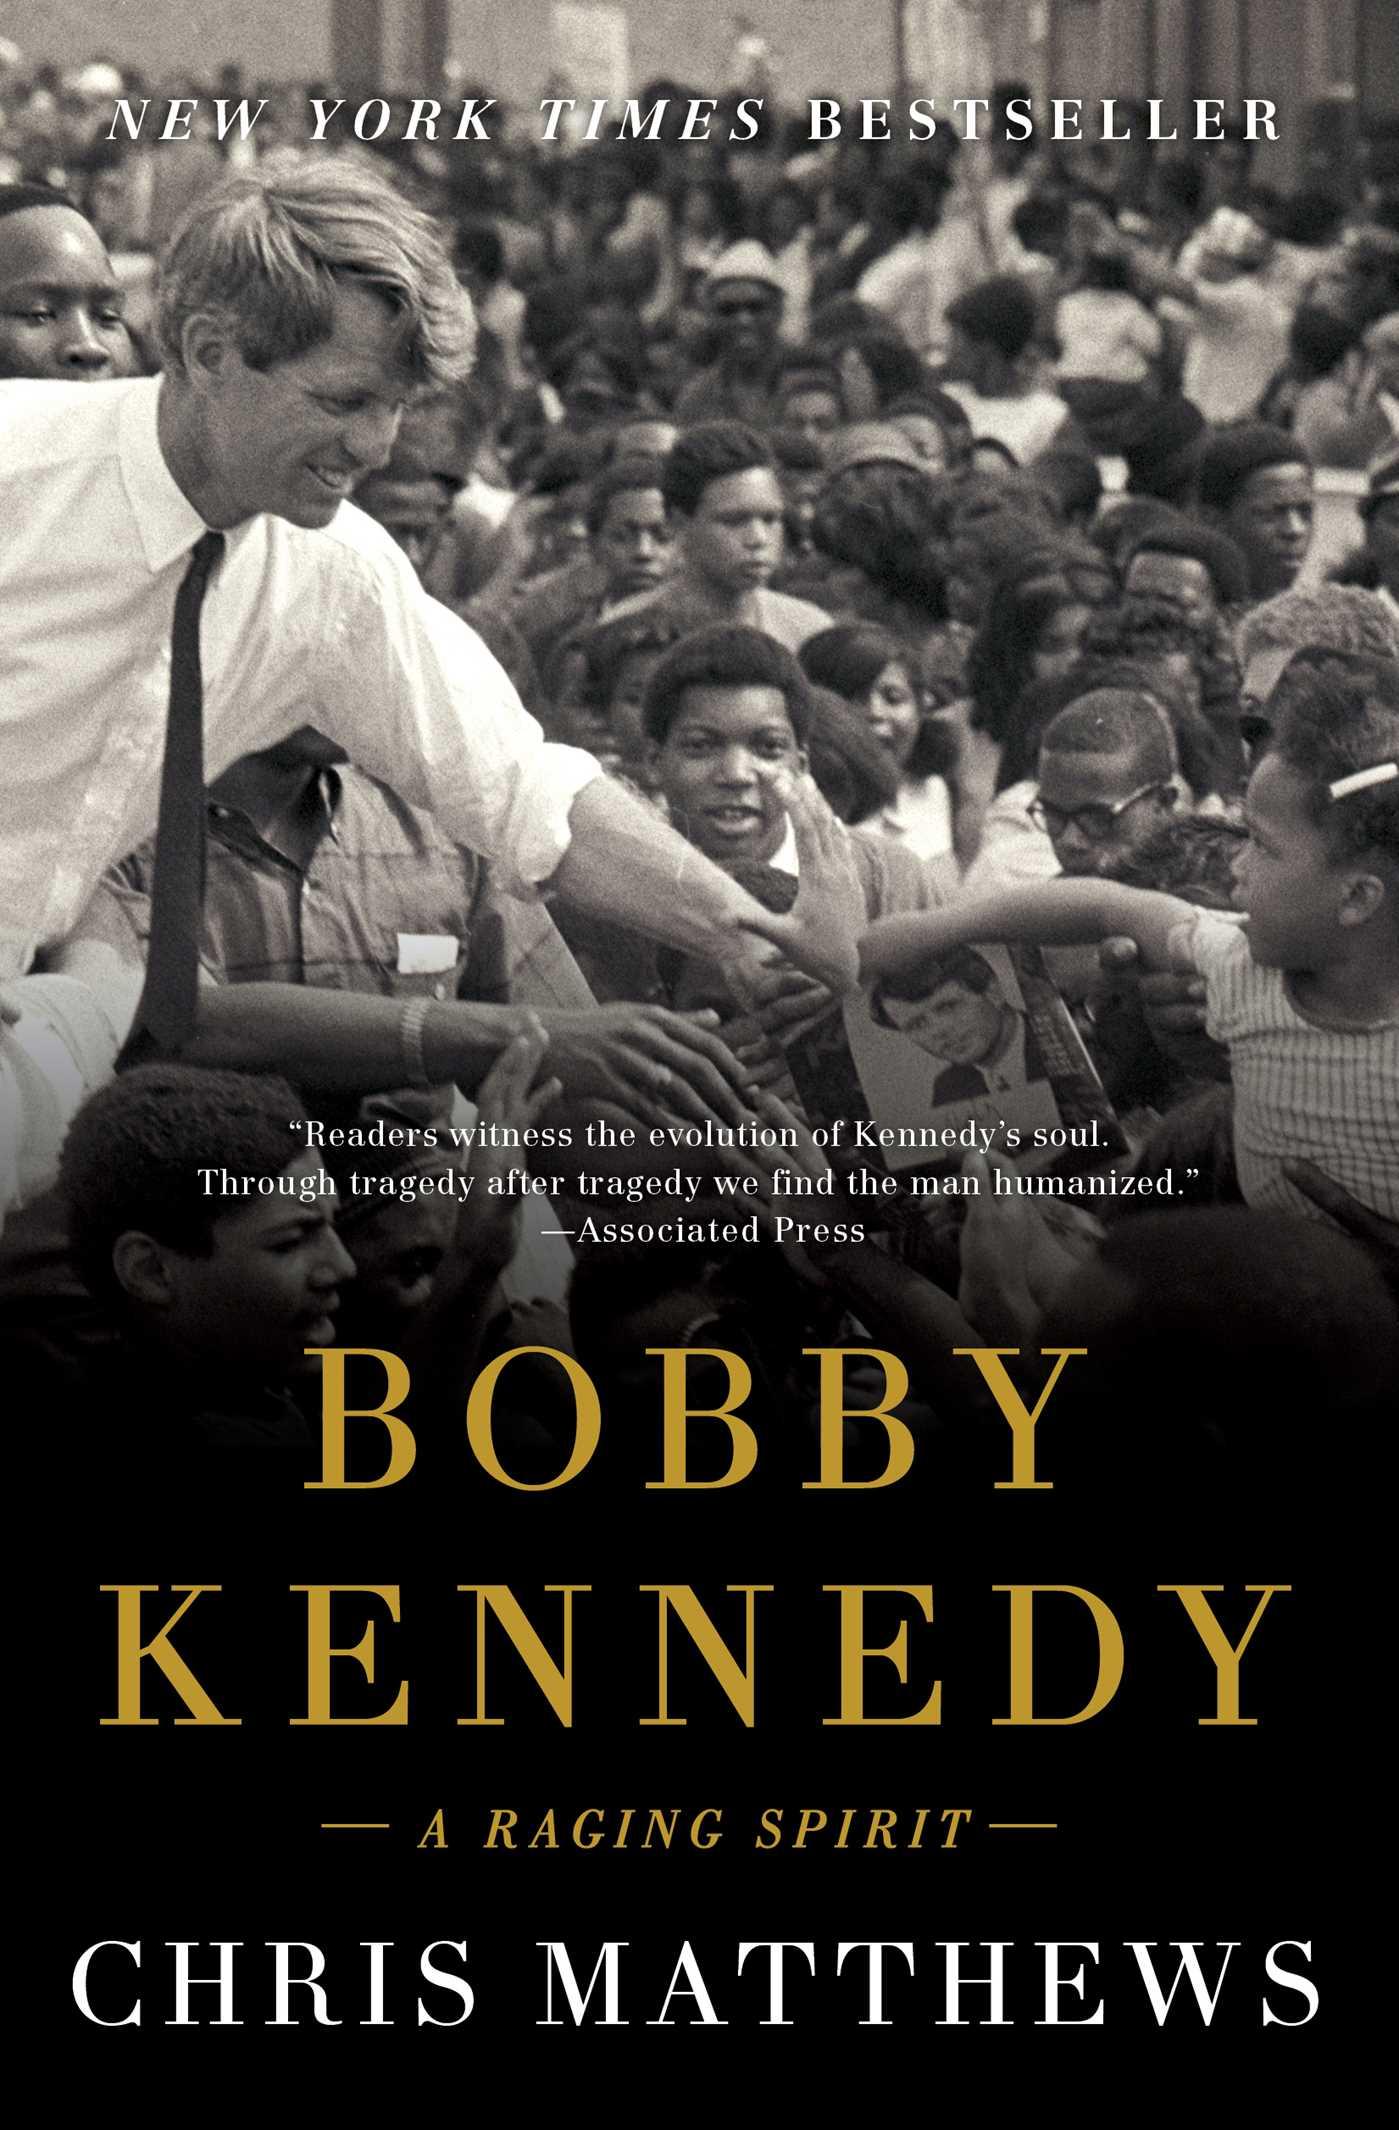 Bobby Kennedy A Raging Spirit